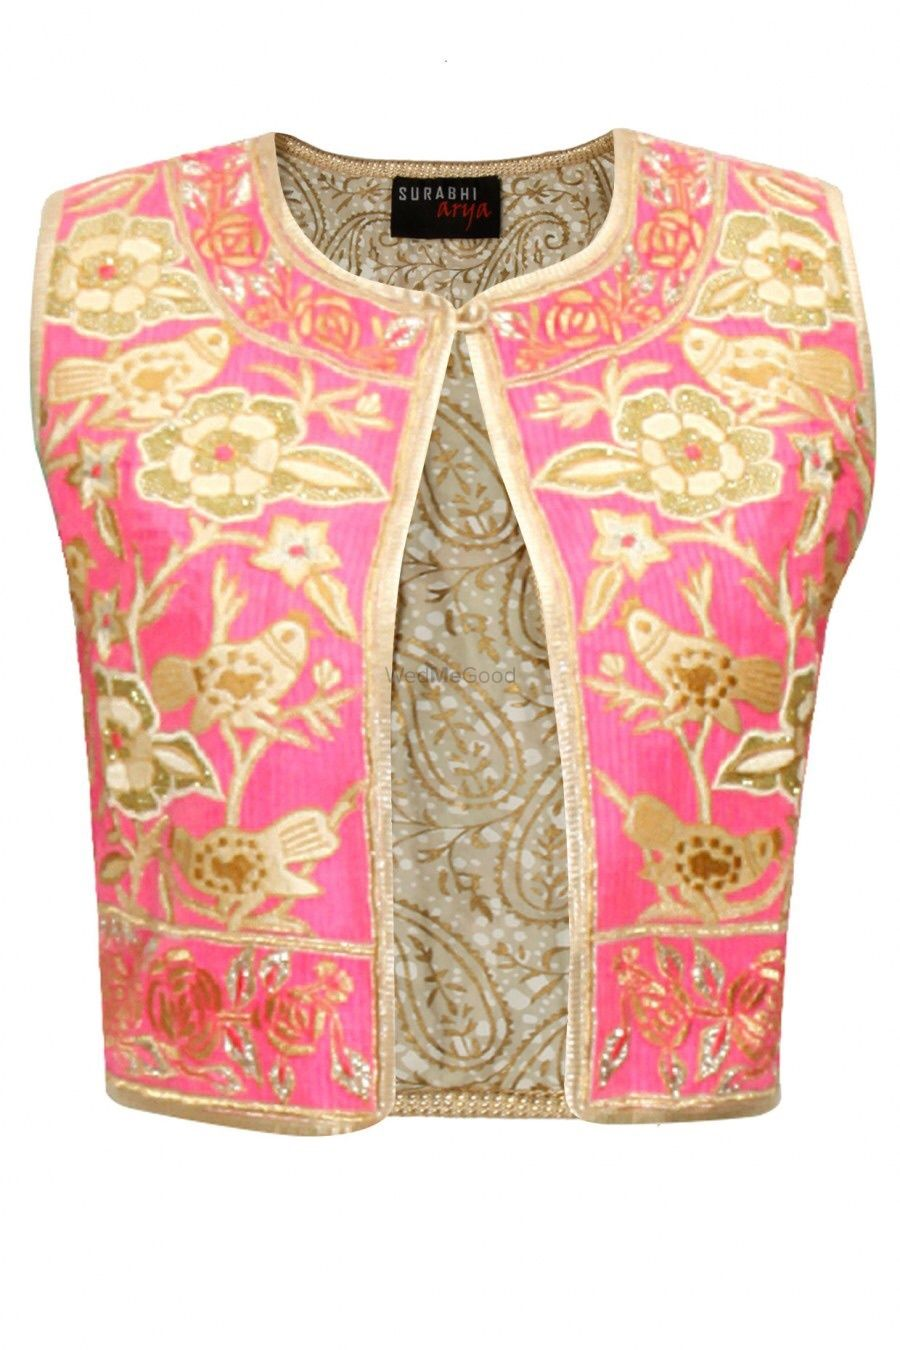 Photo of pink and gold gota work blouse